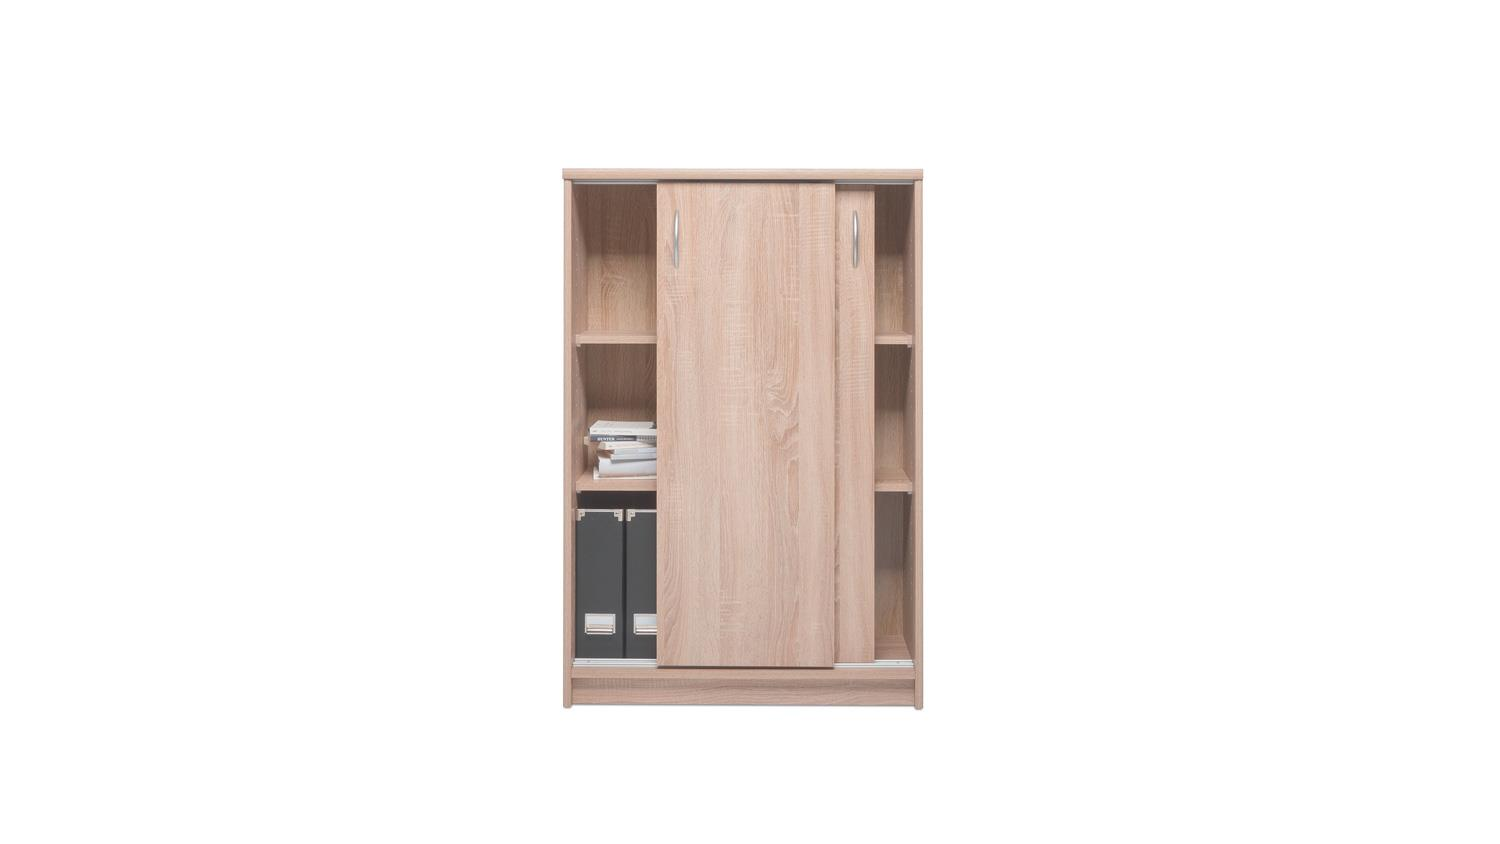 schrank sonoma eiche highboard schrank calpe sonoma eiche s gerau tv kommode village tv. Black Bedroom Furniture Sets. Home Design Ideas